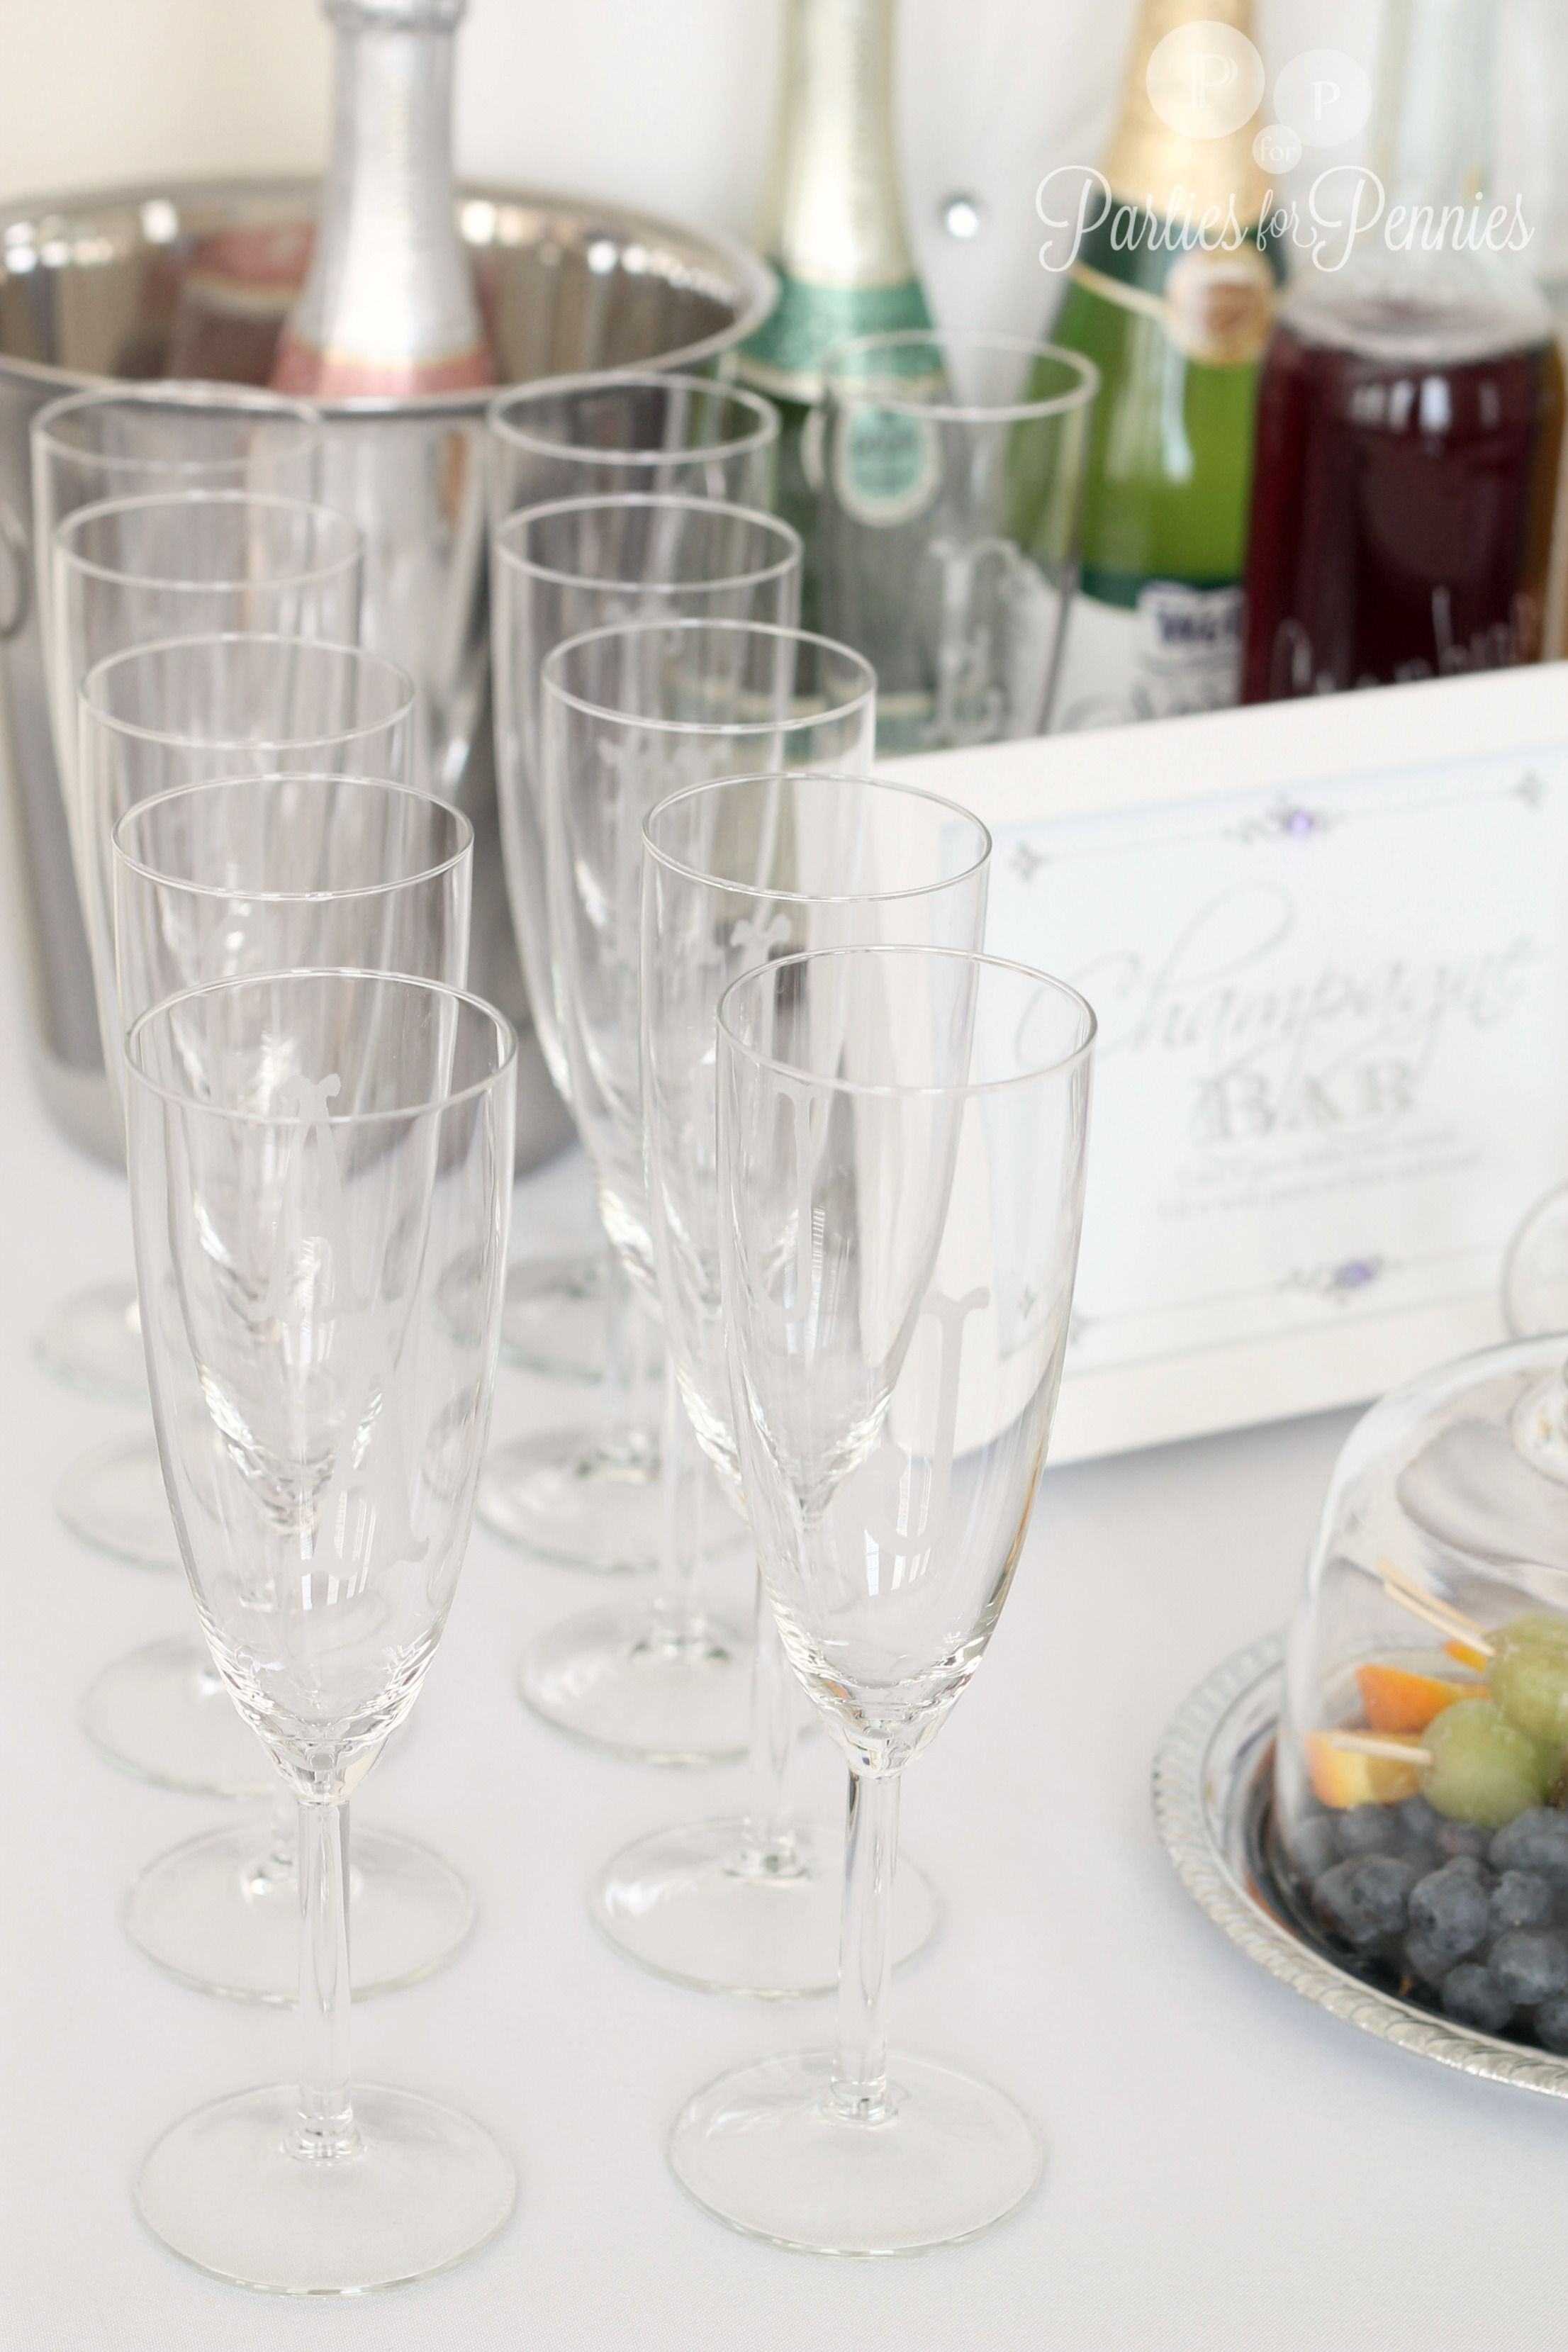 Champagne Bridal Shower - give etched glasses as favor by ...